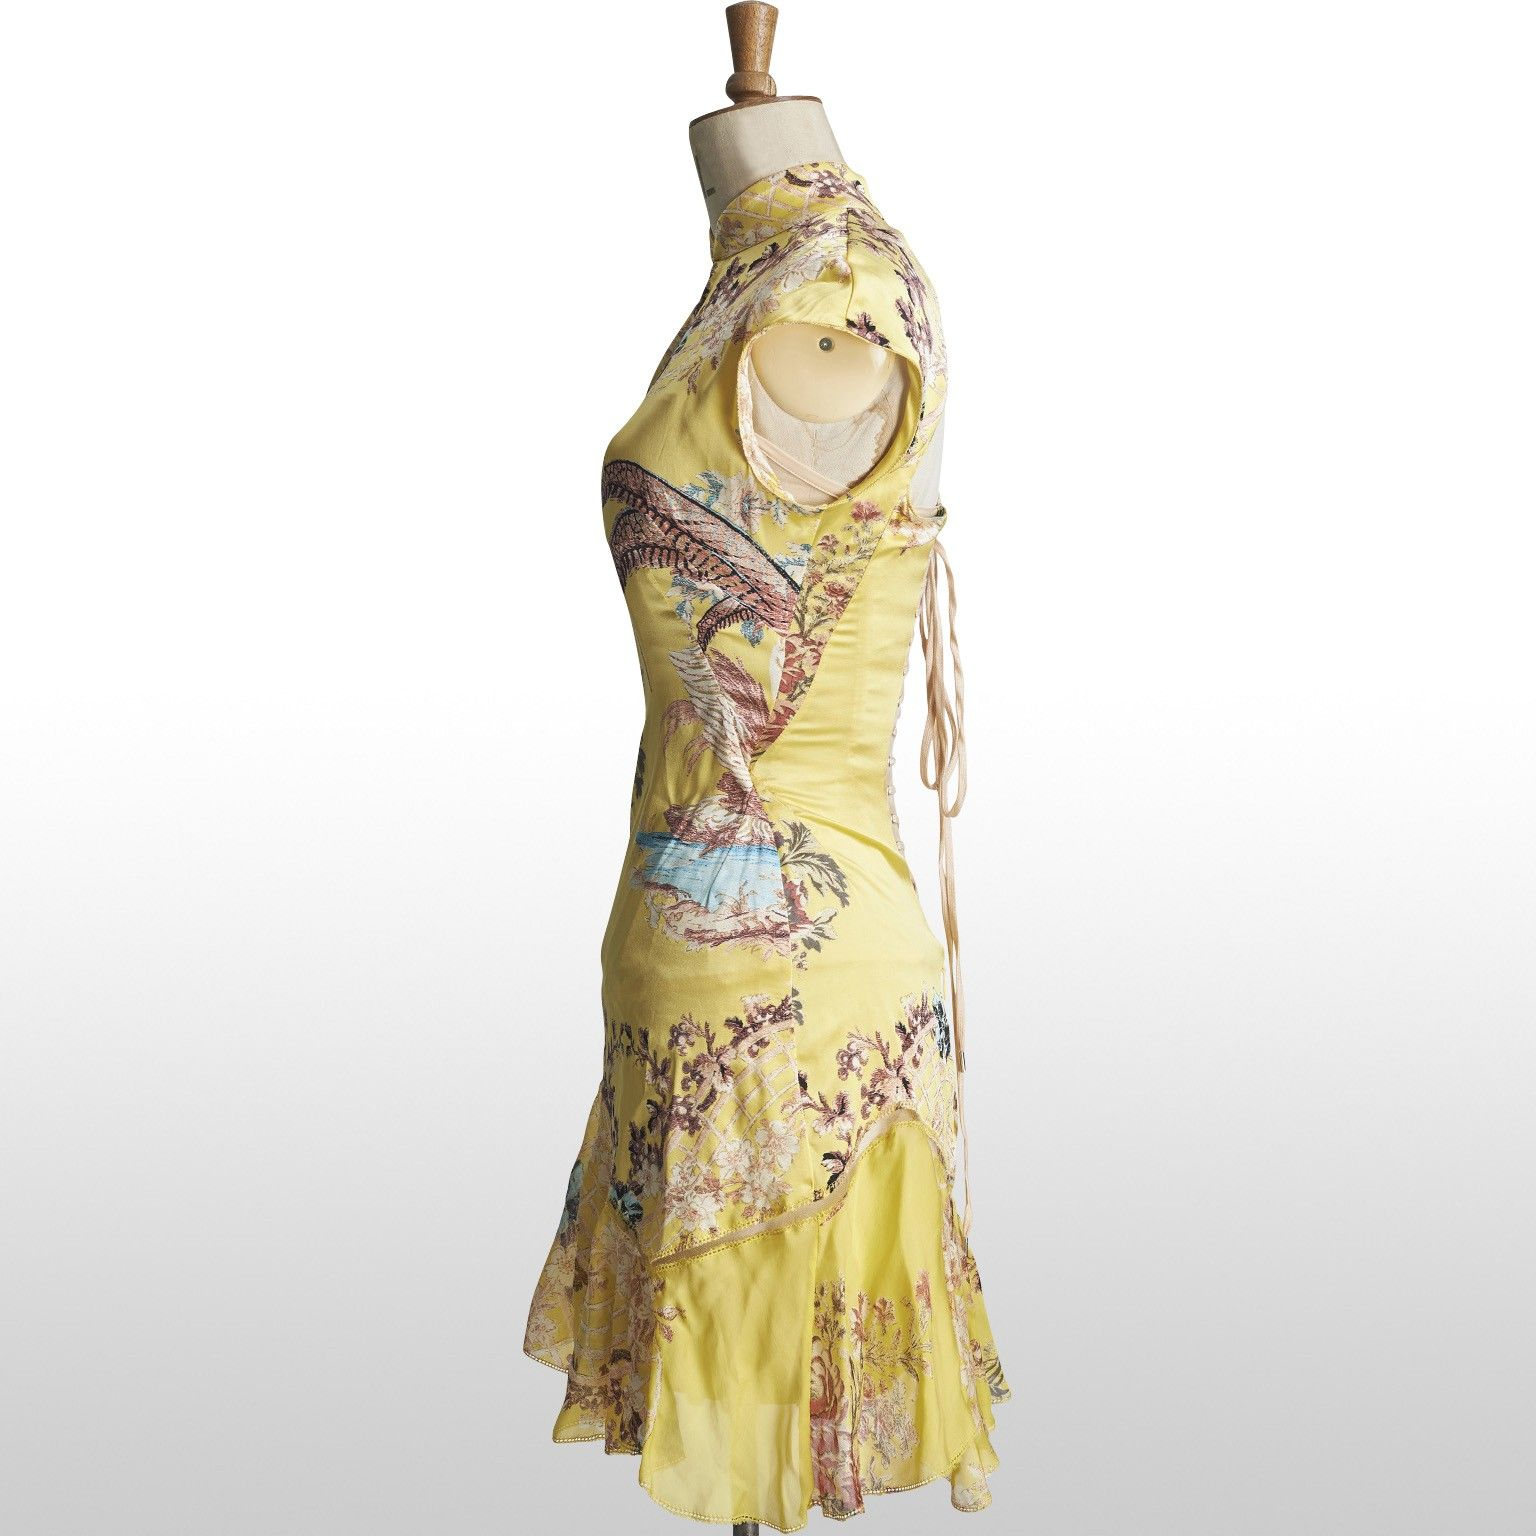 Roberto Cavalli (2003) Canary Yellow Silk Floral Chinoiserie Print Mini Dress - RUNWAY - Size S